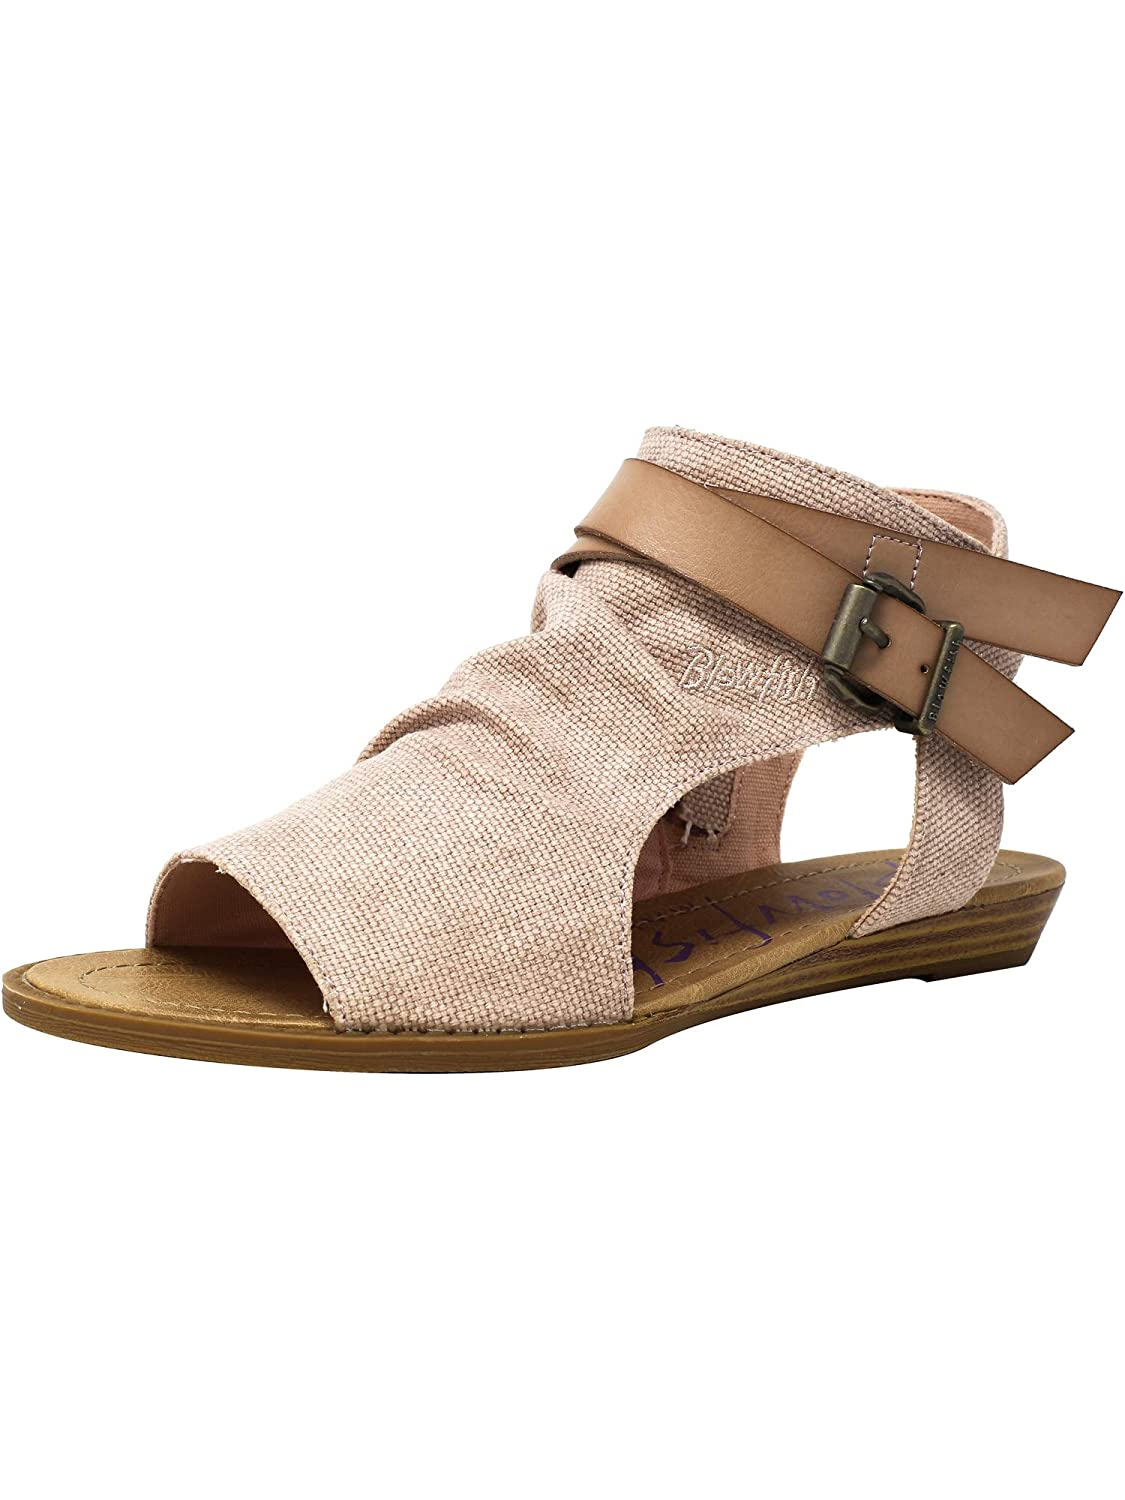 bluesh Rancher Canvas Dyecut Pu Blowfish Women's Balla Wedge Sandal